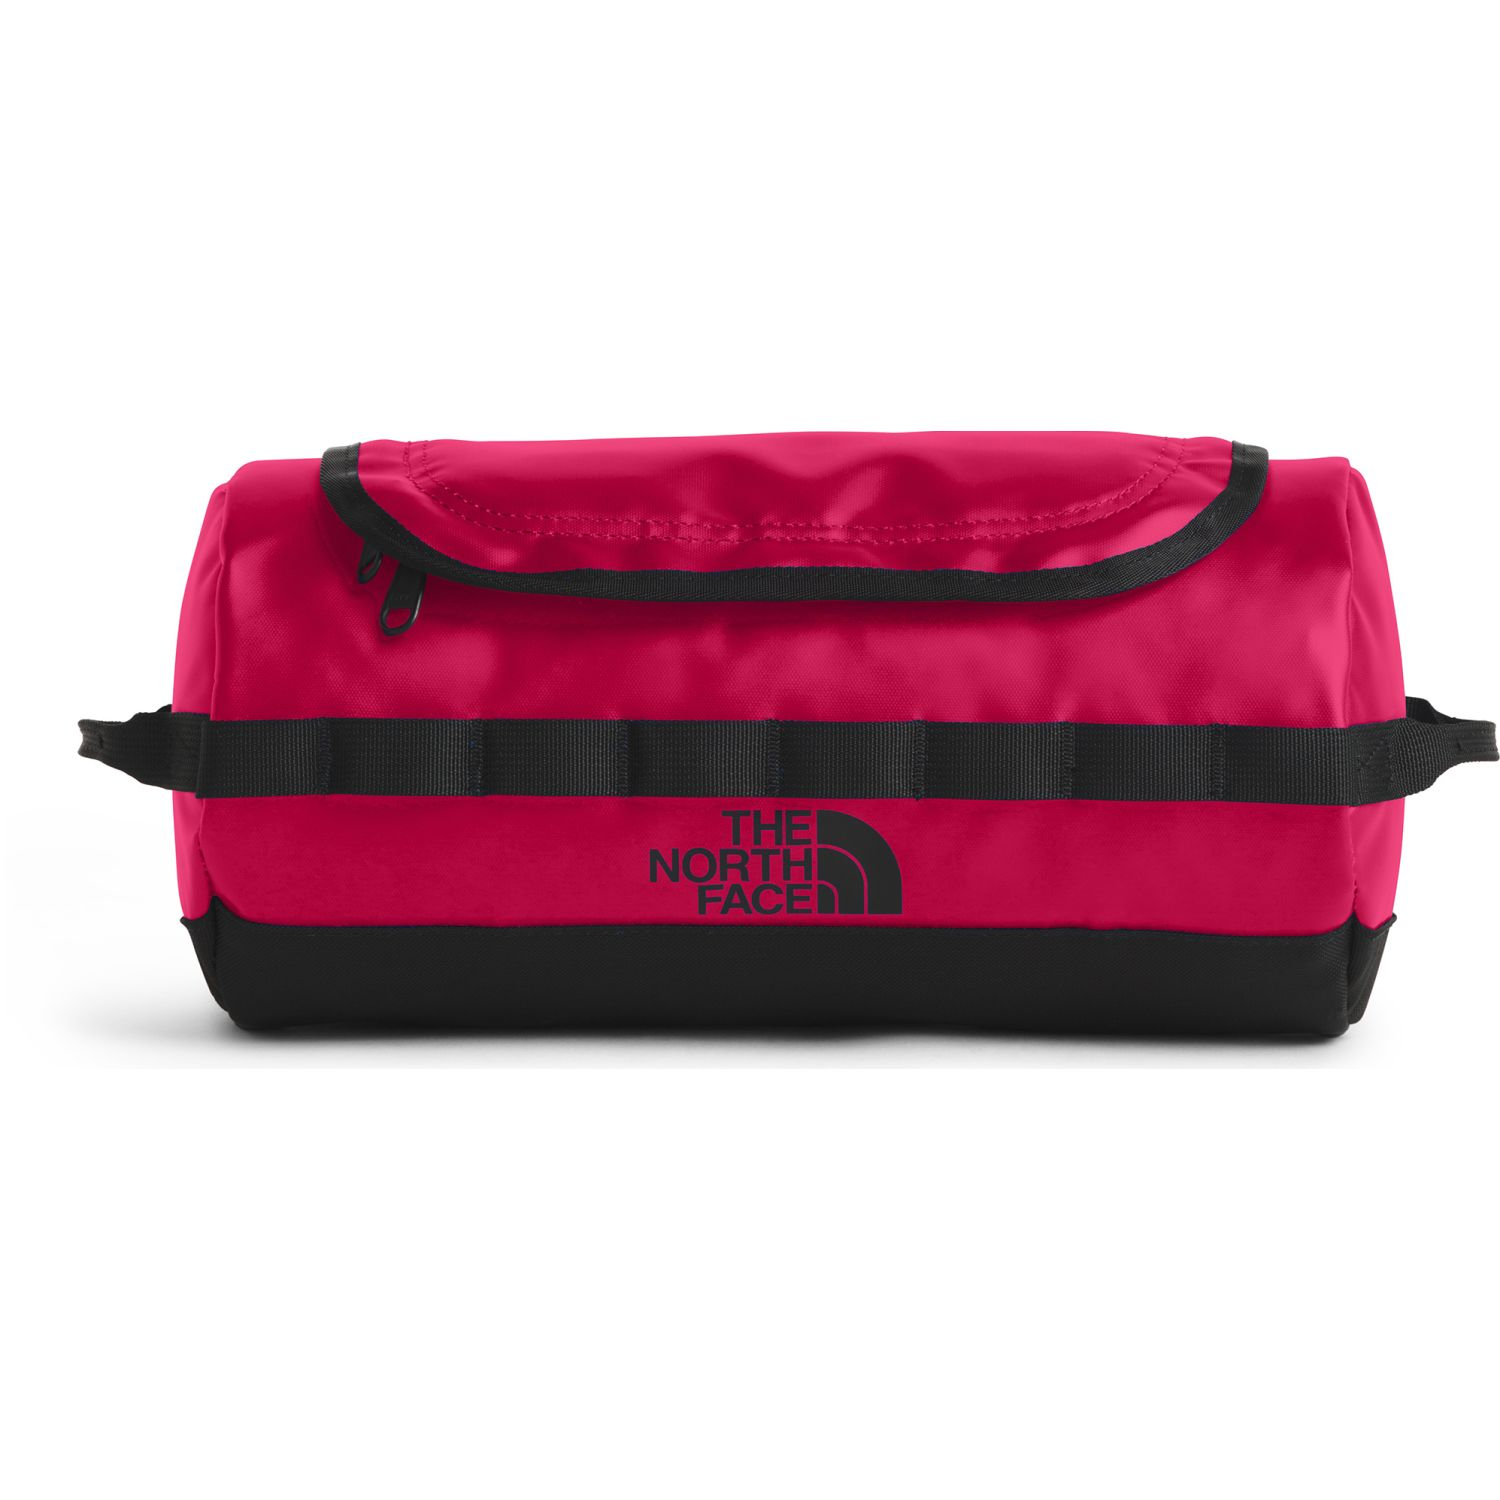 The North Face BC TRAVEL CANISTER- L Rojo / negro Bolsas de tocador